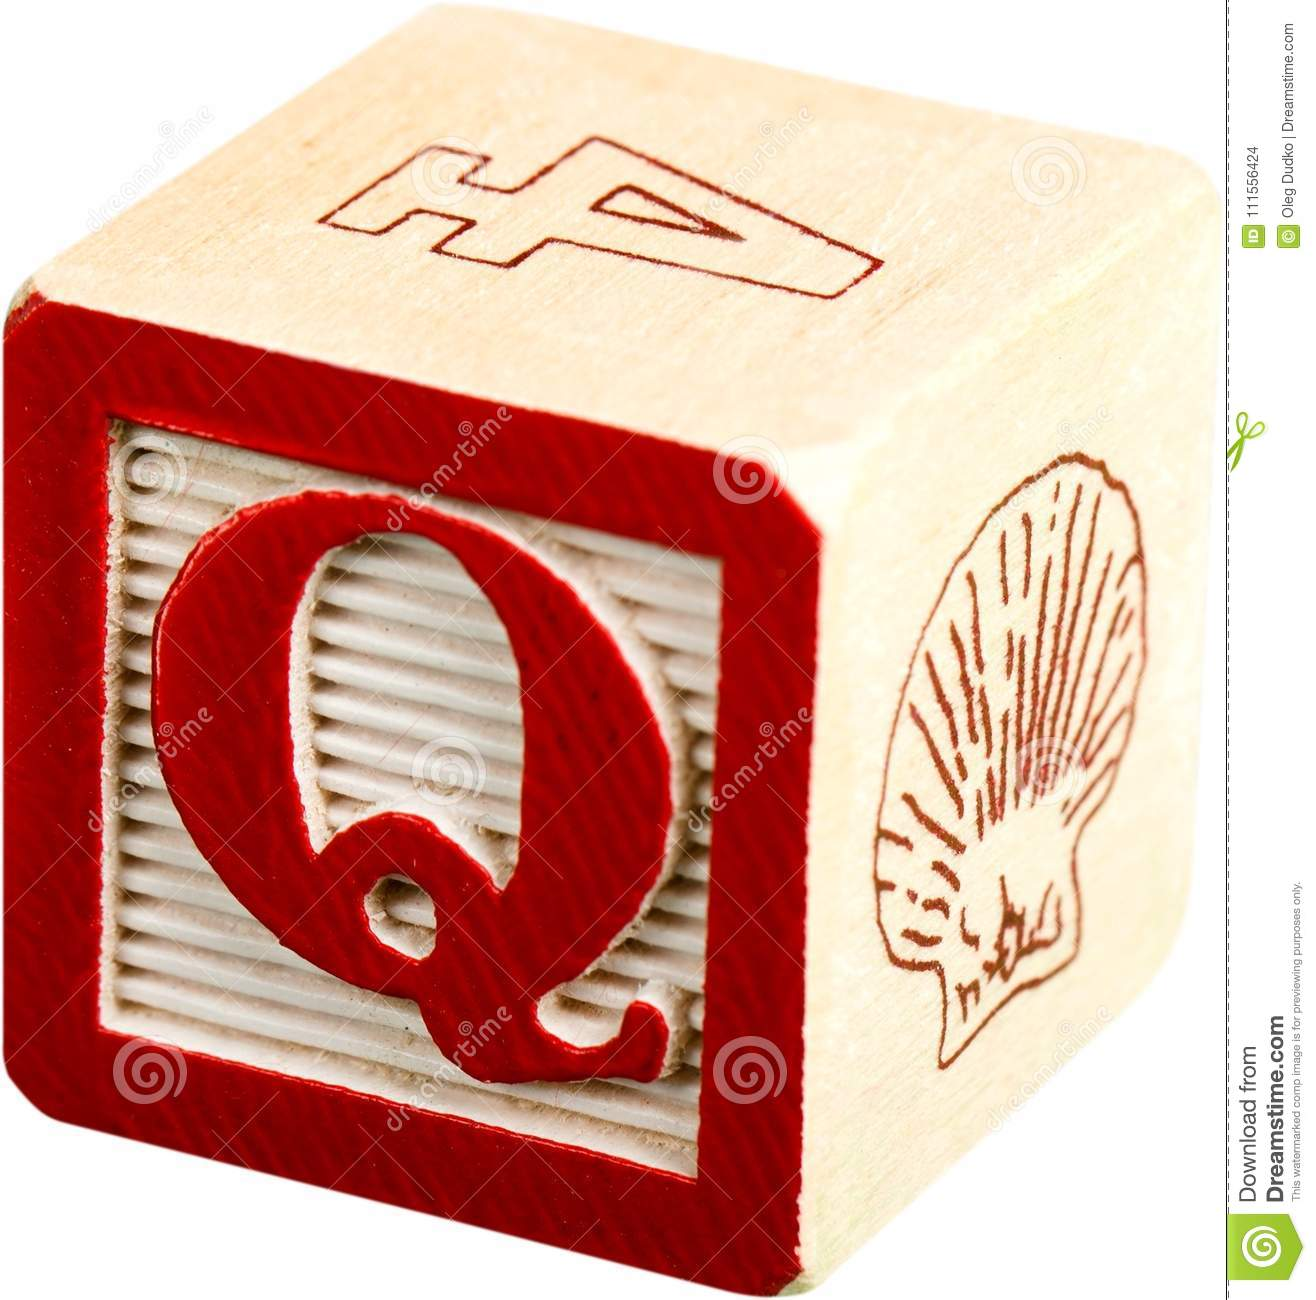 Wooden Letter Block With Letter Q